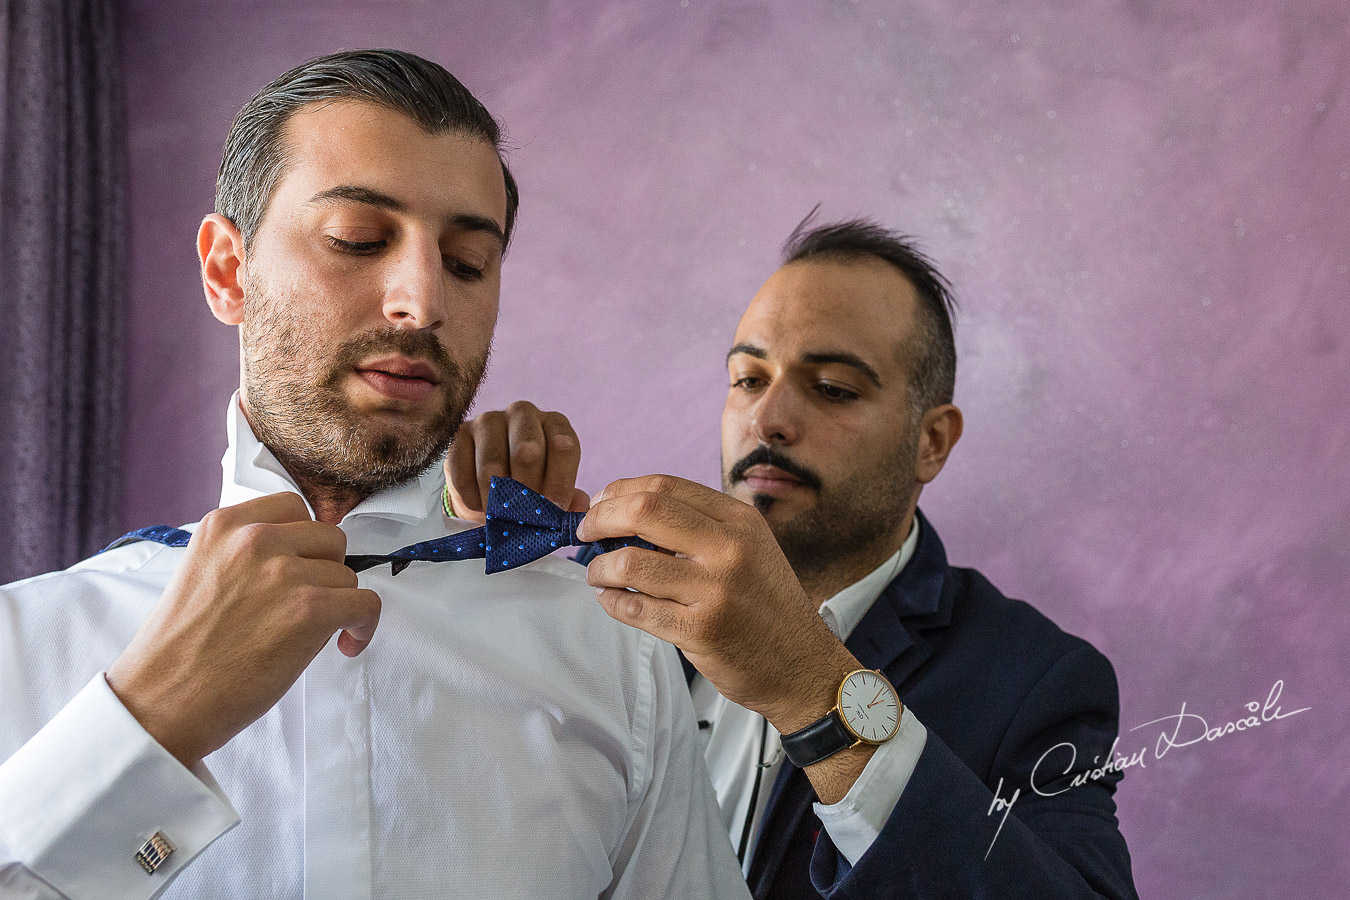 Moments from the groom's getting ready captured at an elegant and romantic wedding at Elias Beach Hotel by Cristian Dascalu.